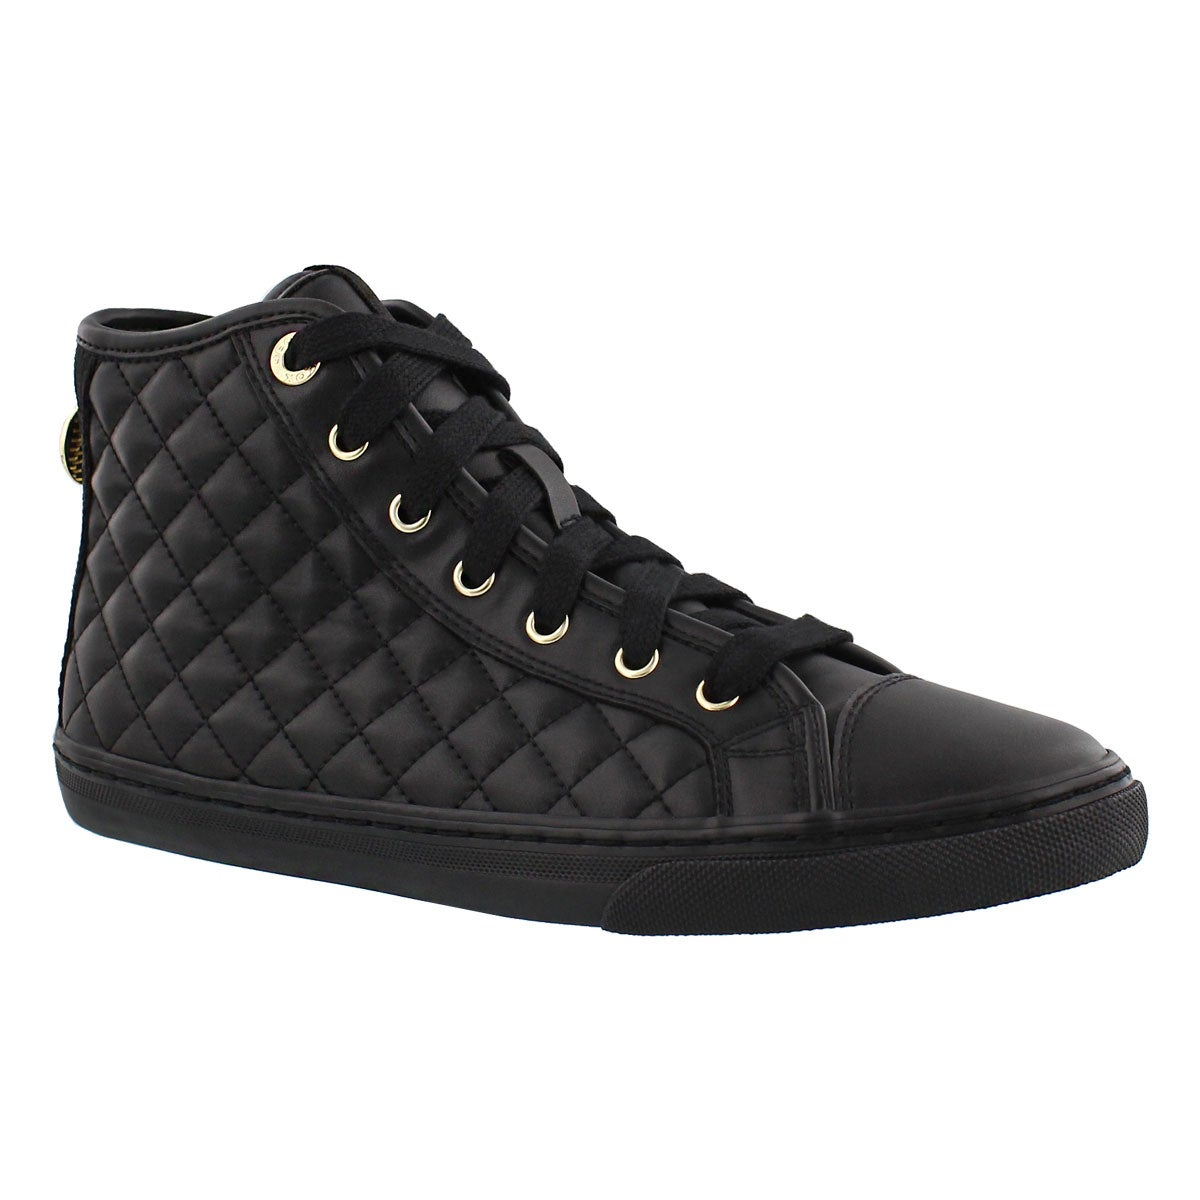 Women's NEW CLUB black lace up sneakers